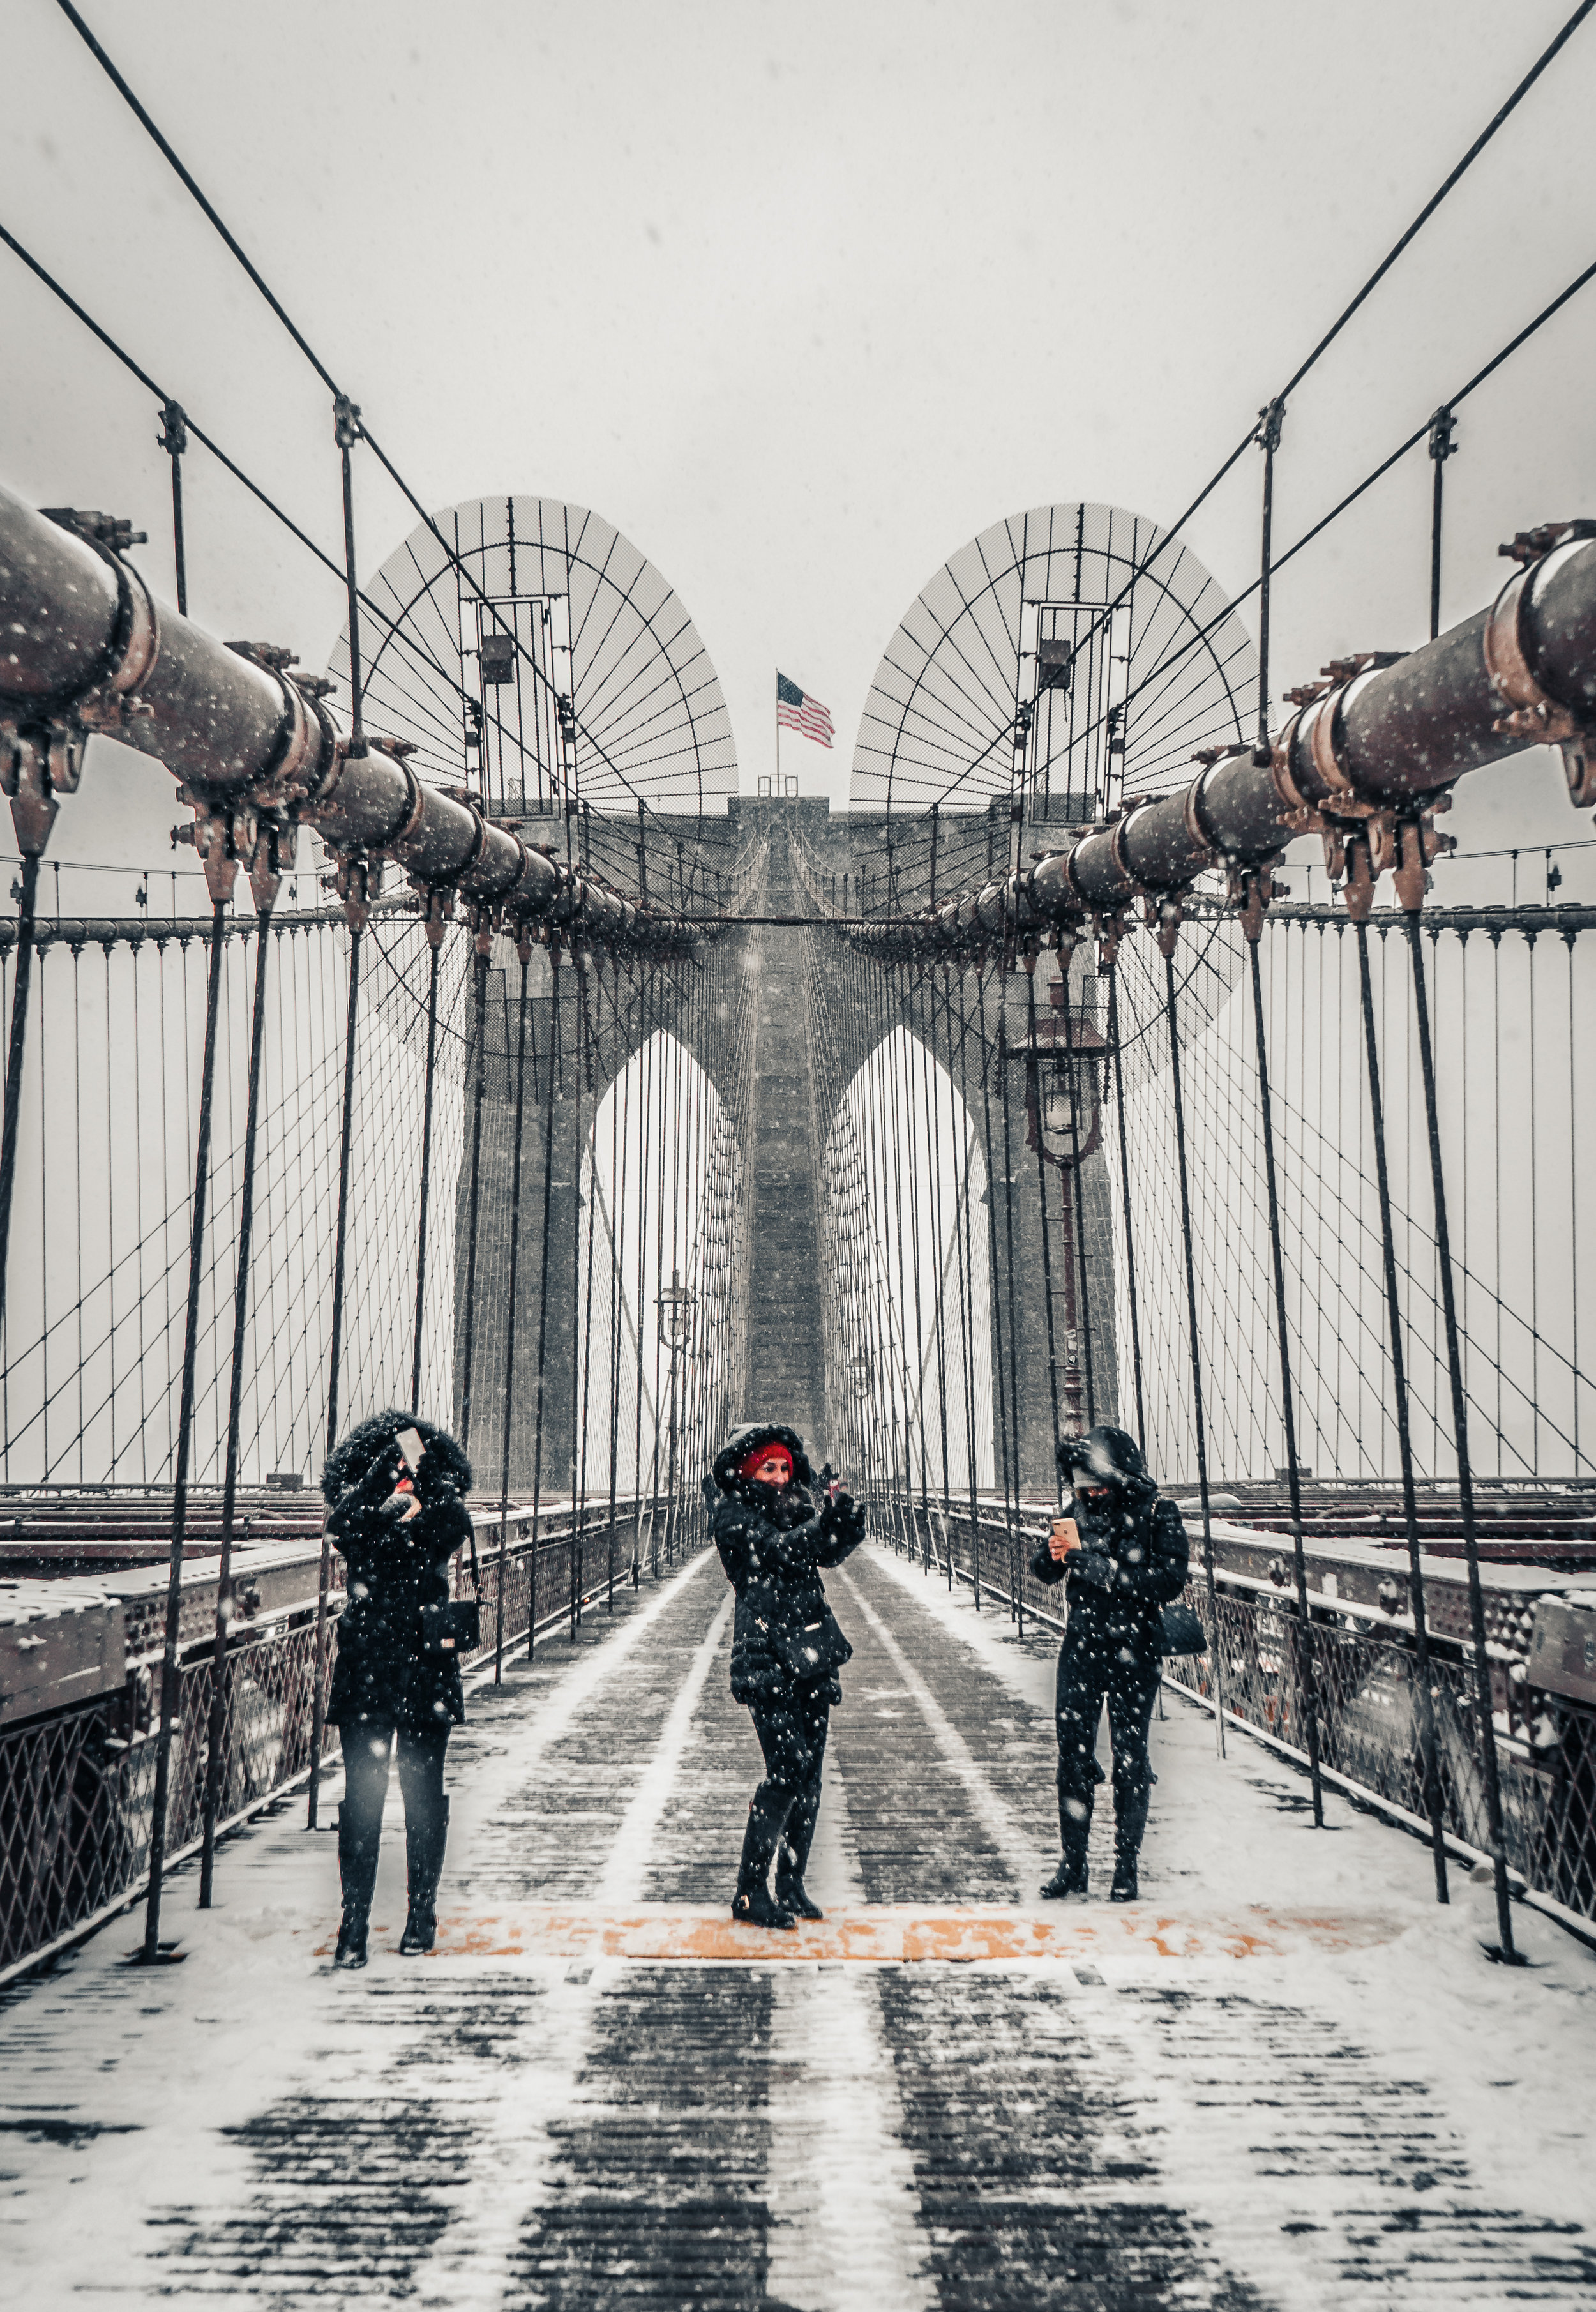 I love capturing candid moments and people acting natural. These three girls all snapping separate selfies on the Brooklyn Bridge is another favorite.